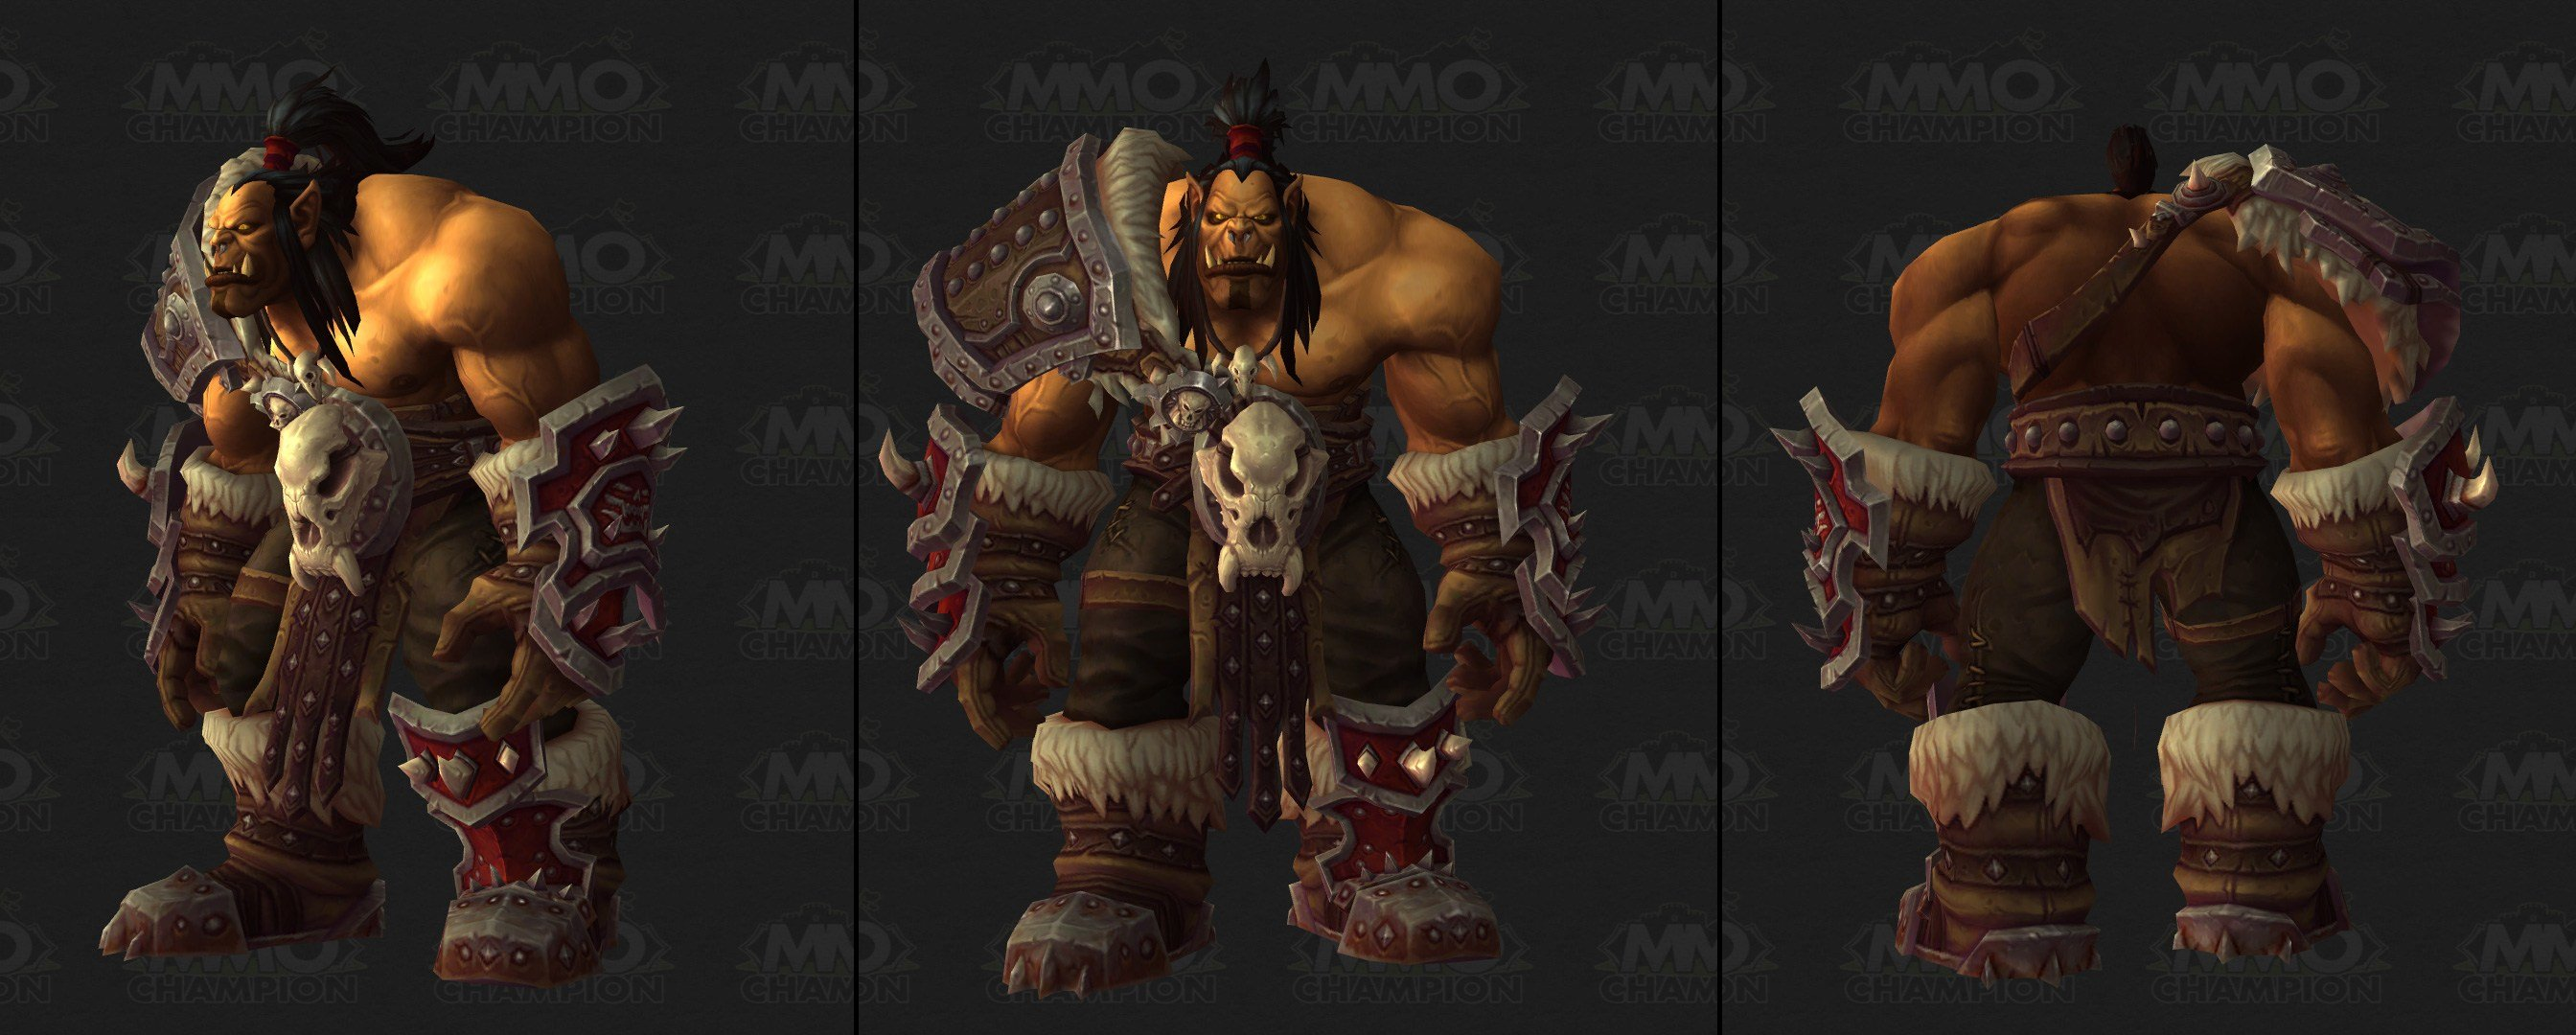 The Best Wow Girl Grommash Pictures